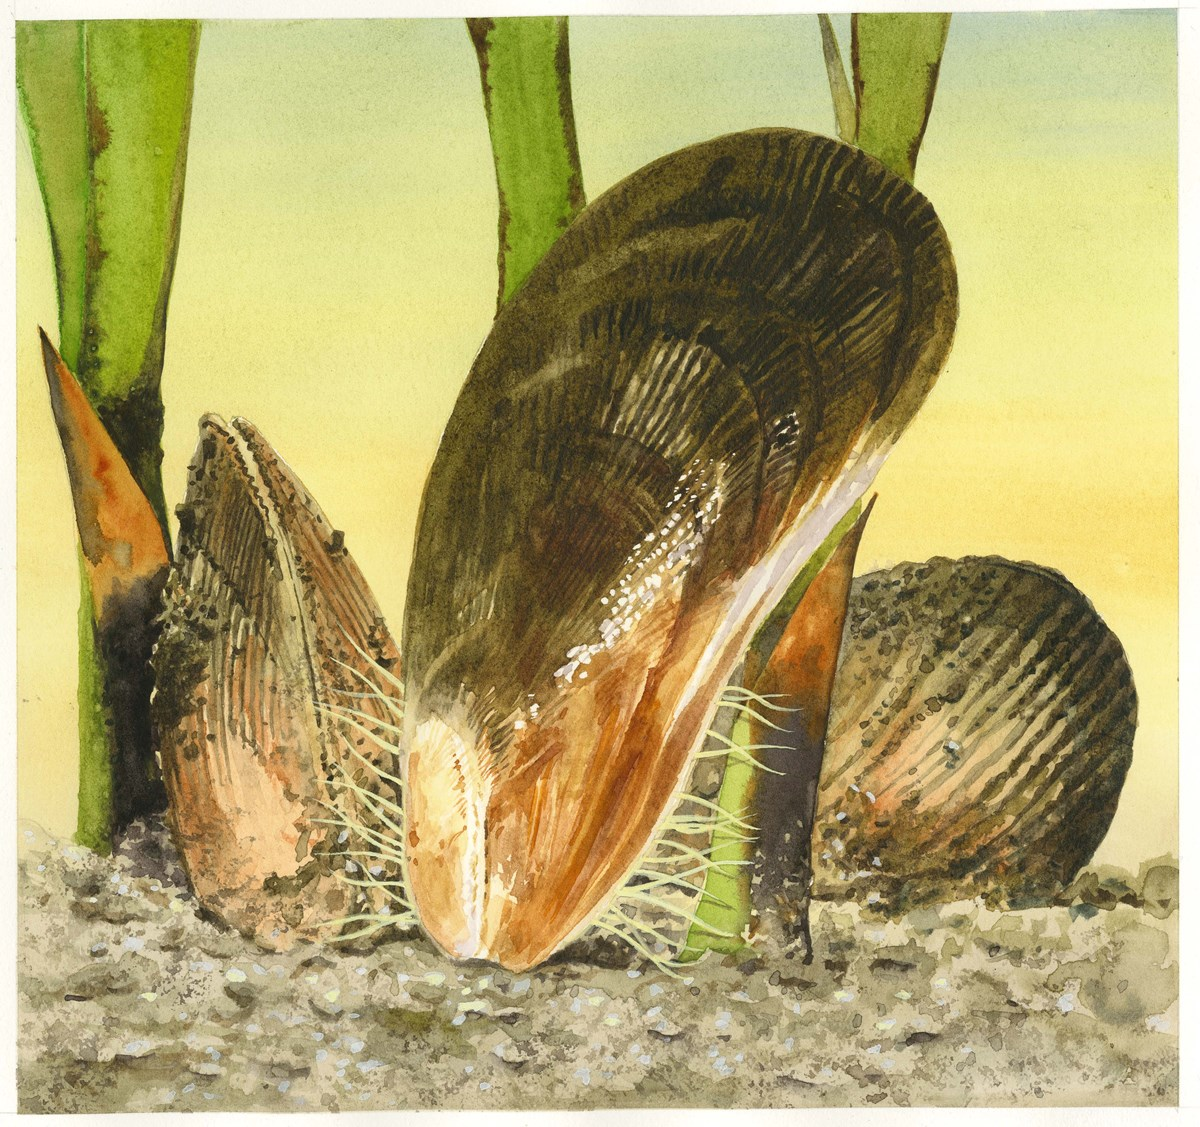 Illustrated ribbed mussel shells sit upright in brown dirt near green aquatic plant stems.